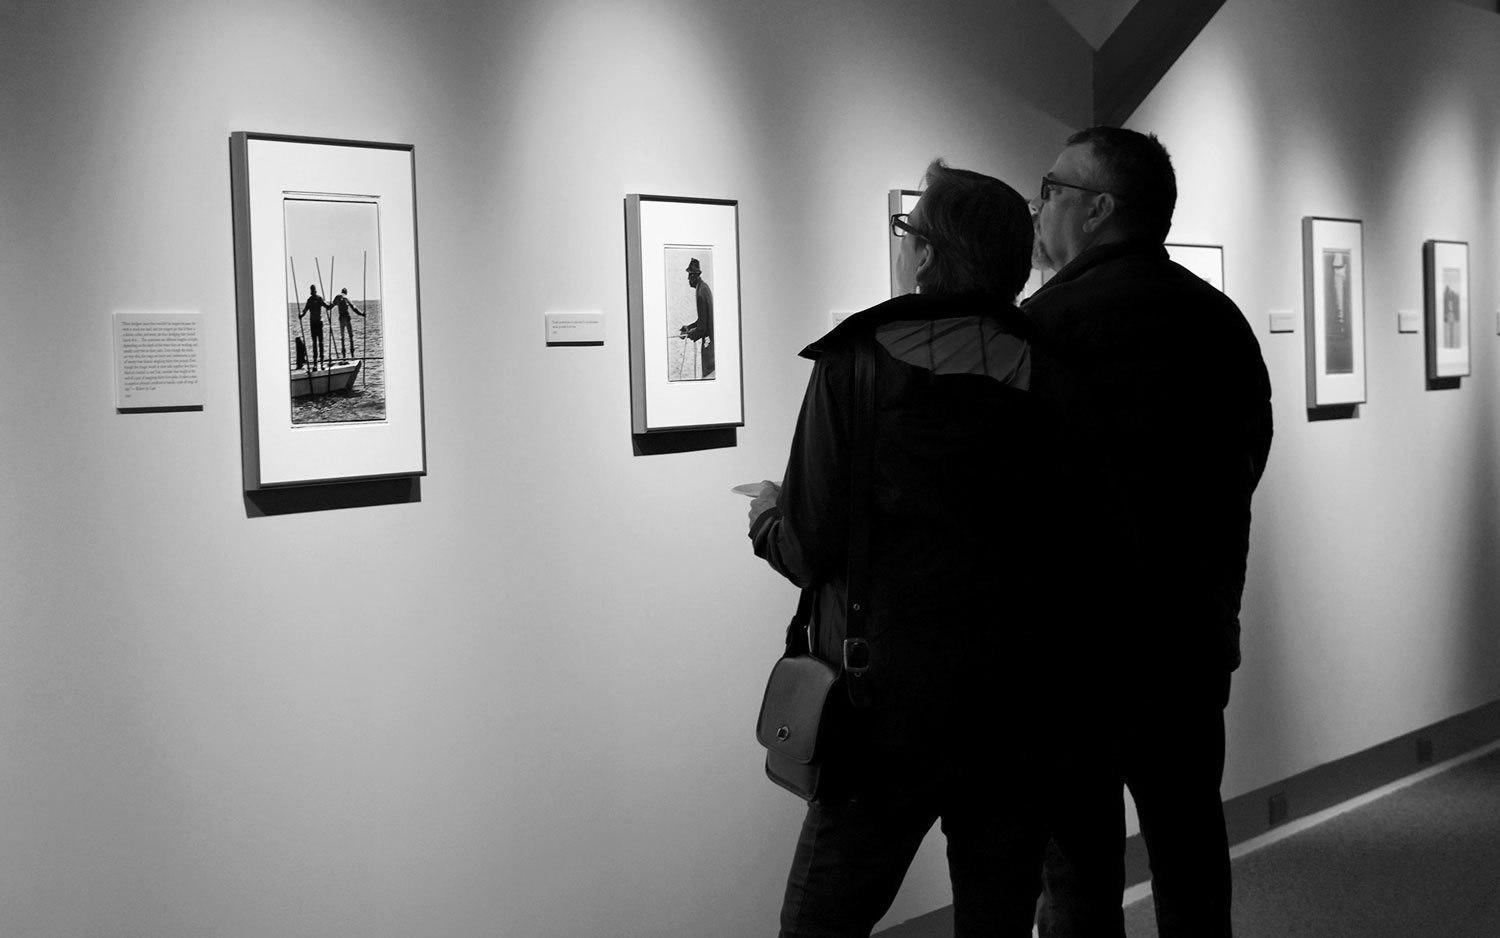 man and woman viewing photographs in an exhibition